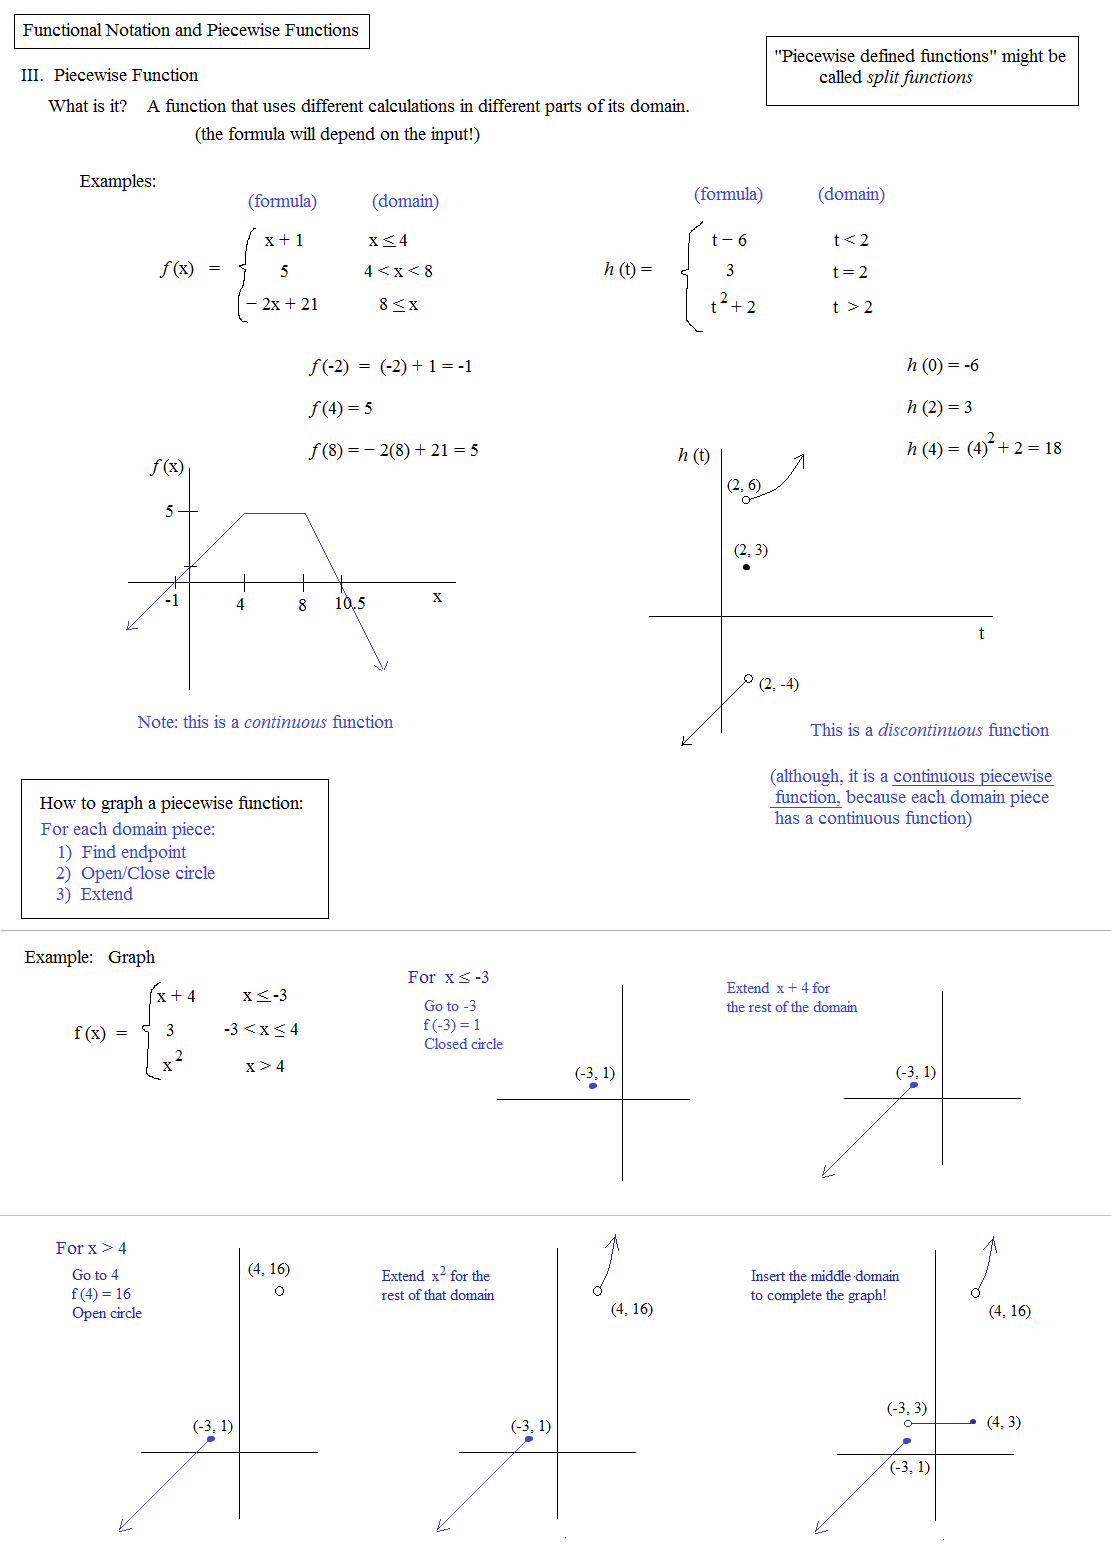 29 Algebra 2 Function Notation Worksheet Answers